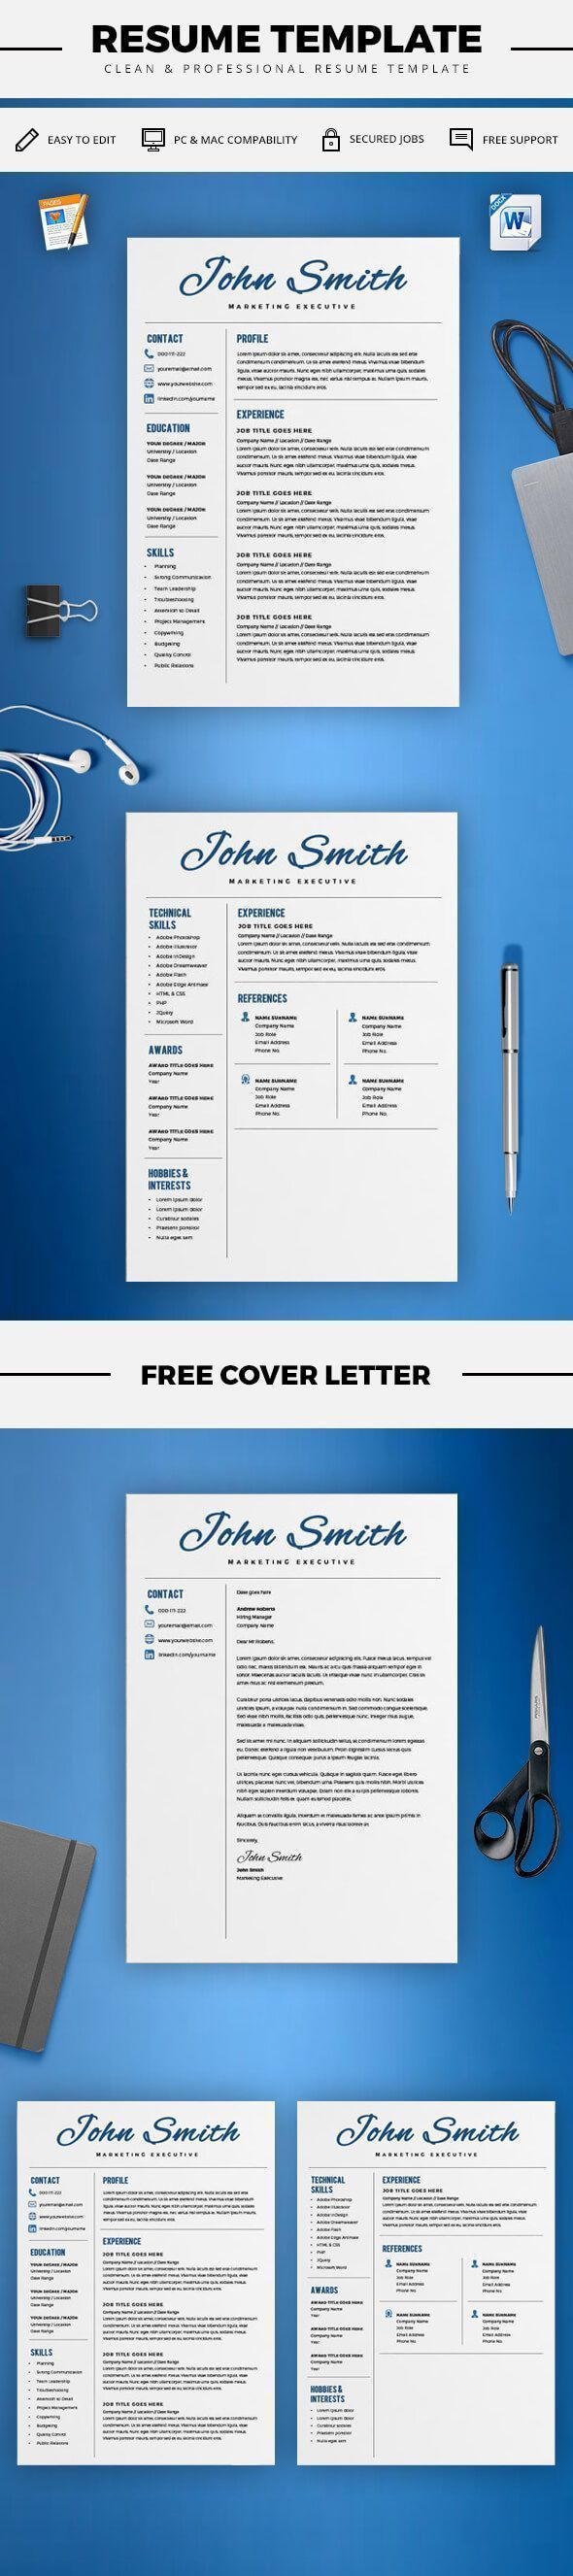 Chronological Resume Samples%0A Best     Best resume ideas on Pinterest   Best resume template  My resume  builder and Words for resume